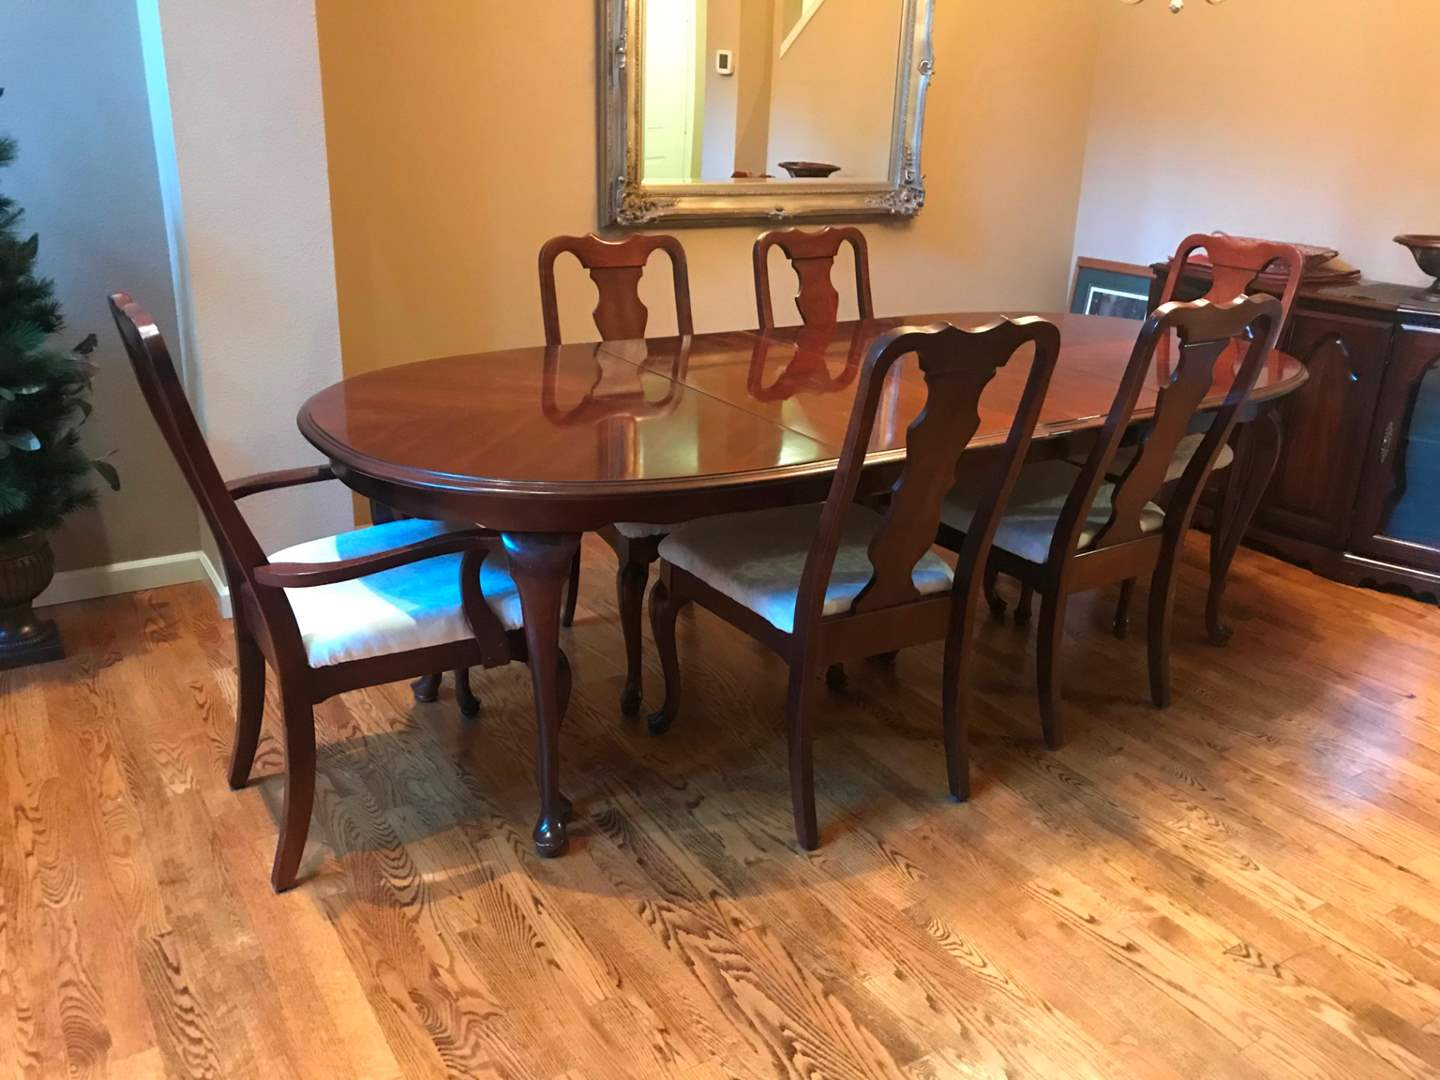 Lot 1 Vintage Broyhill Dining Room Table W 6 Chairs 2 18 Leaves Smallest 29 5 T X 62 W X 43 5 D Largest 98 W Adam S Northwest Estate Sales Auctions